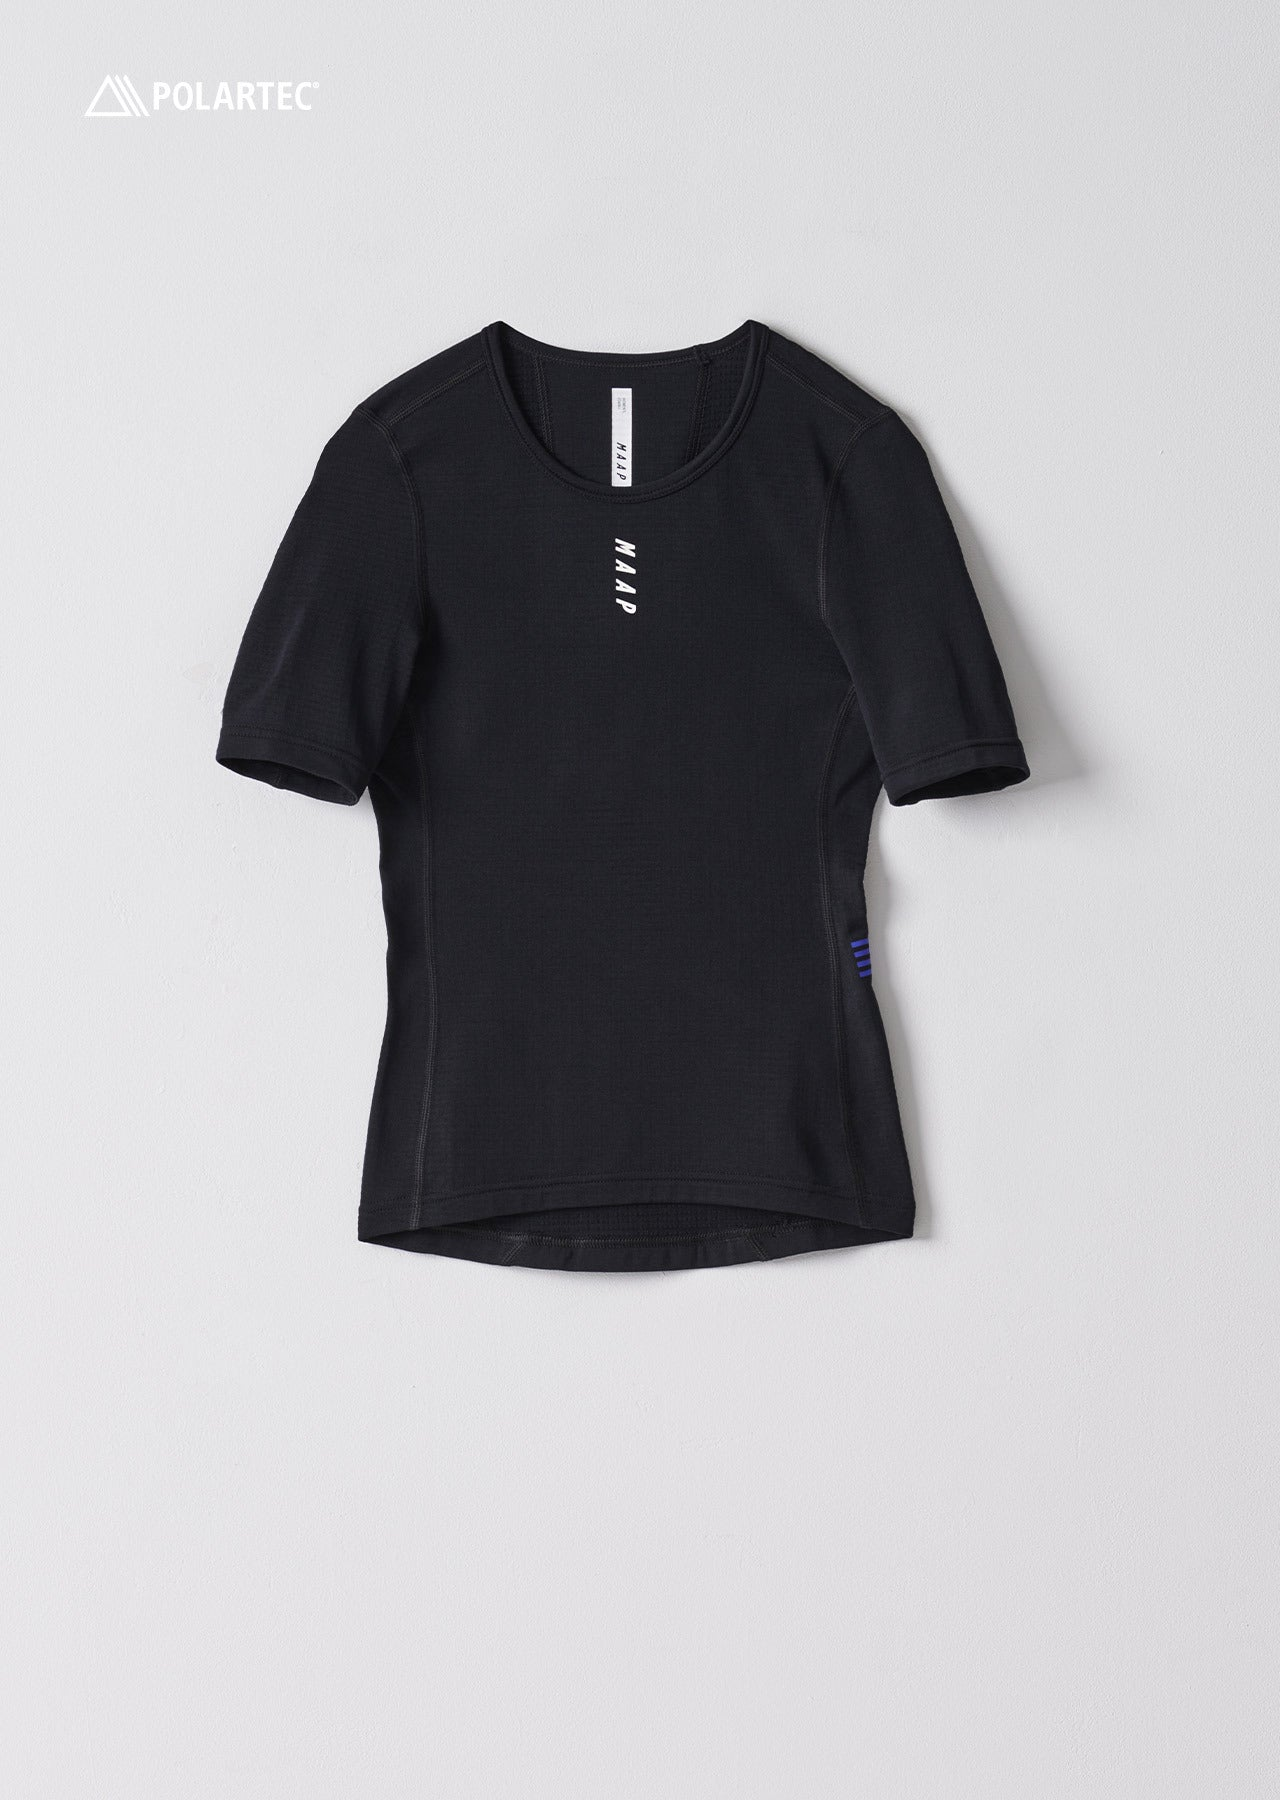 Women's Thermal Base Layer Tee